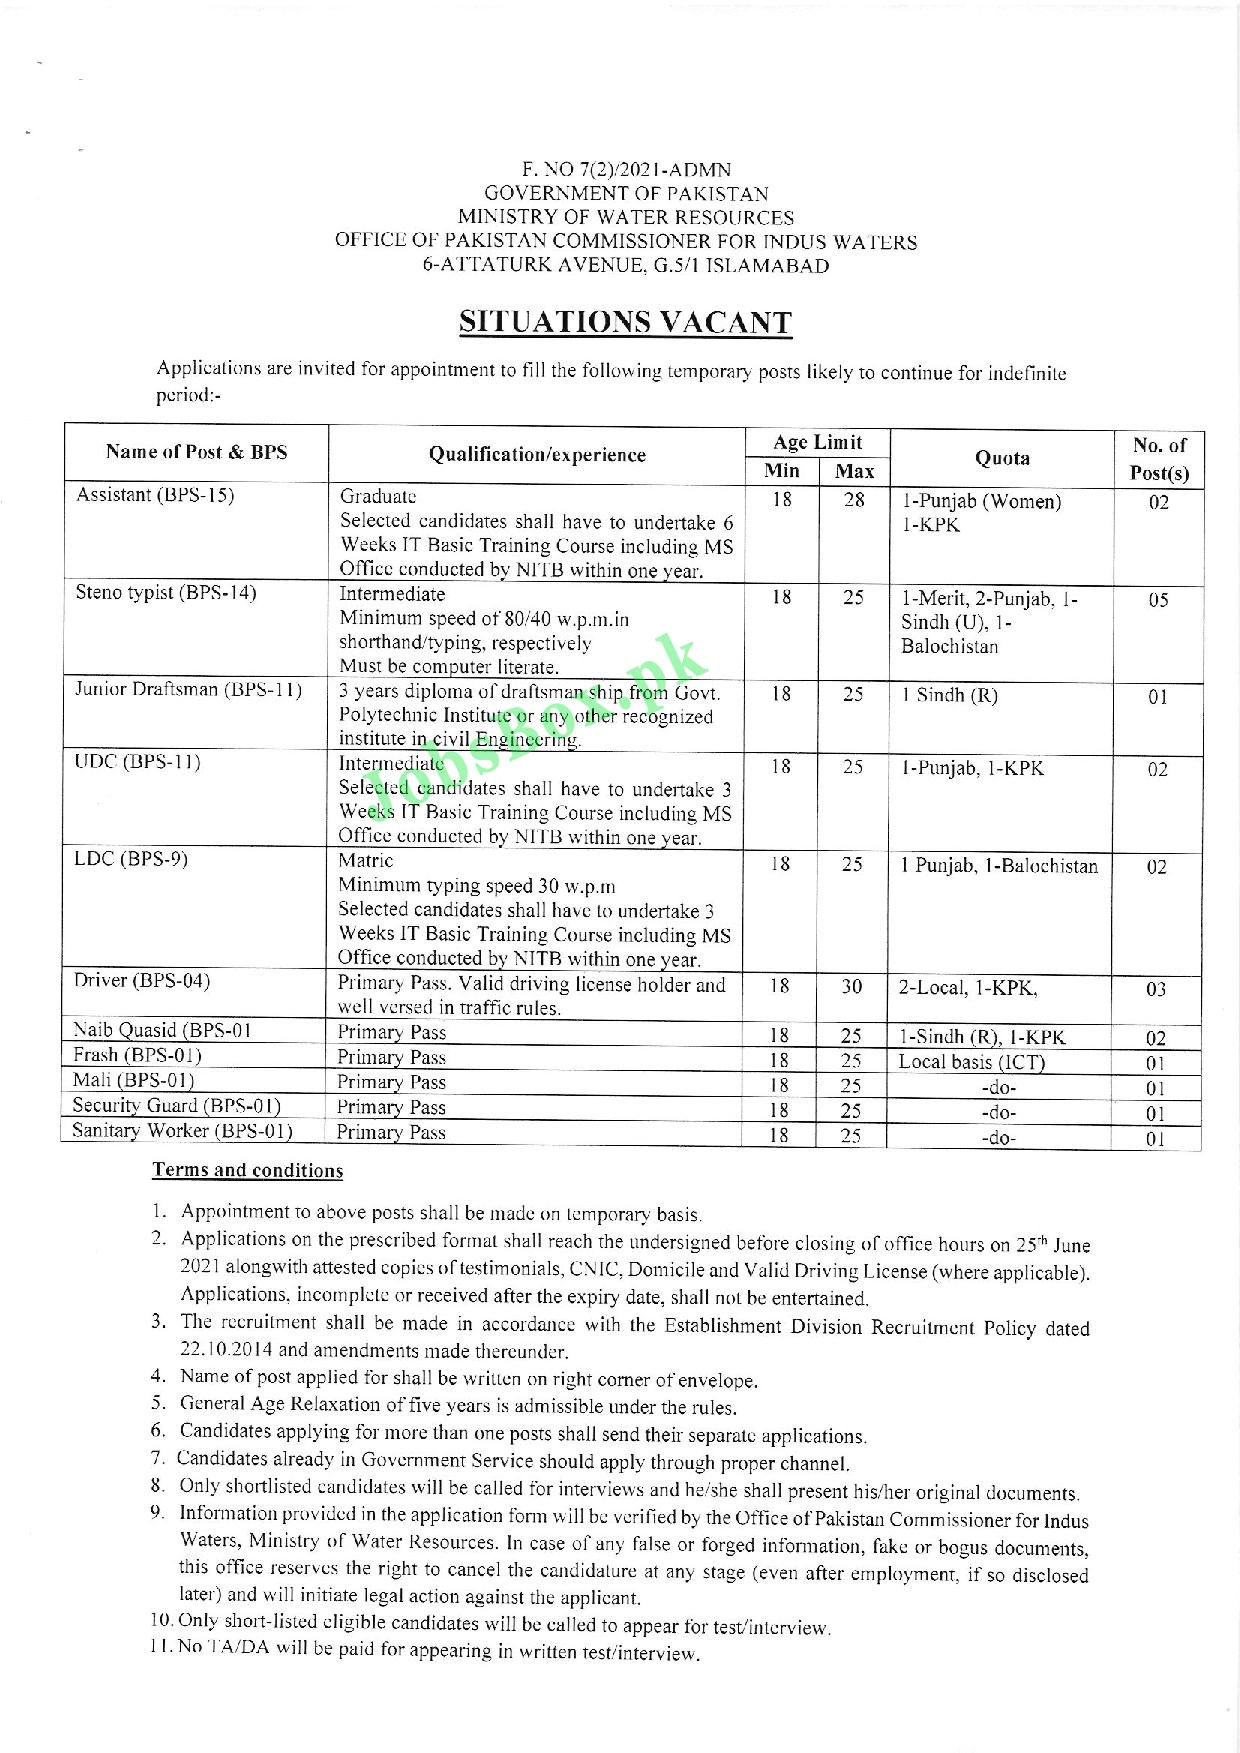 Ministry of Water Resources MOWR Jobs 2021